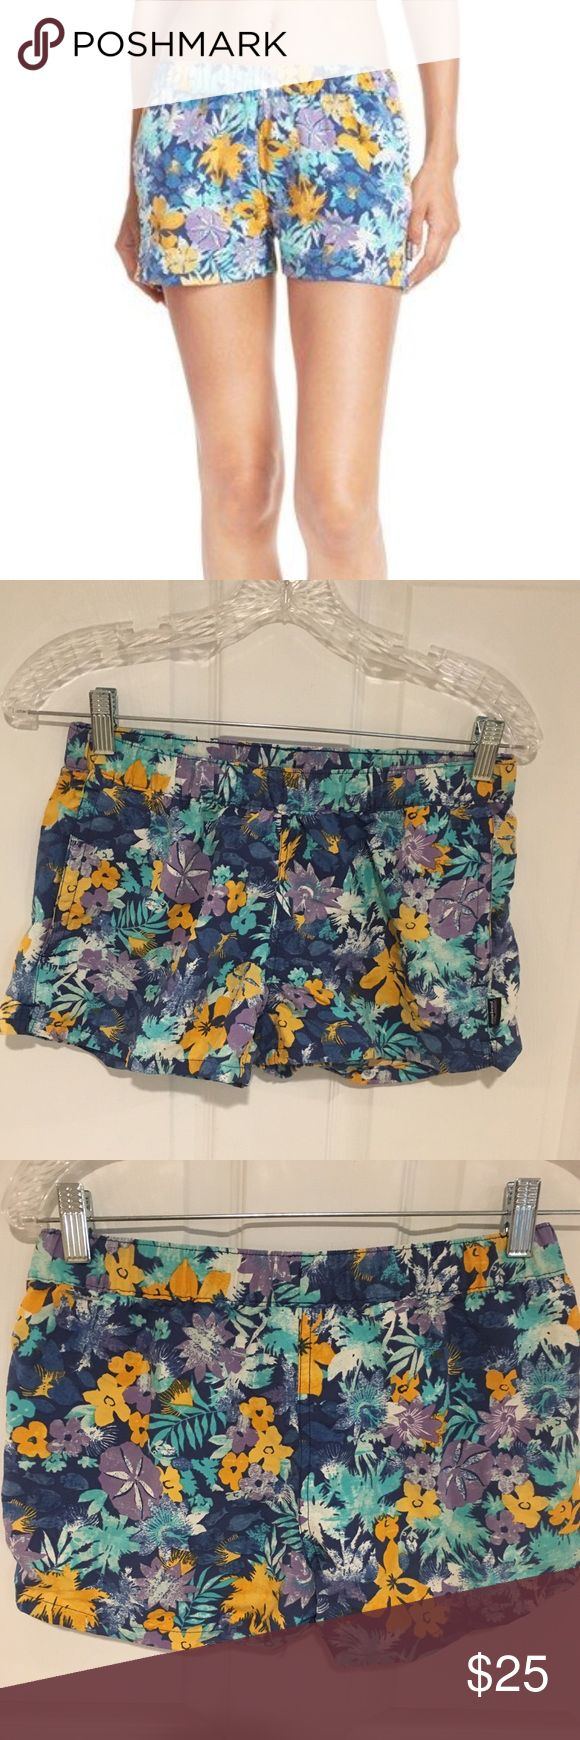 Patagonia Floral Print Barely Baggies Shorts Must have for summer! Super fun Floral pattern and bright color shorts. Barely baggies style. New without tags. Patagonia Shorts